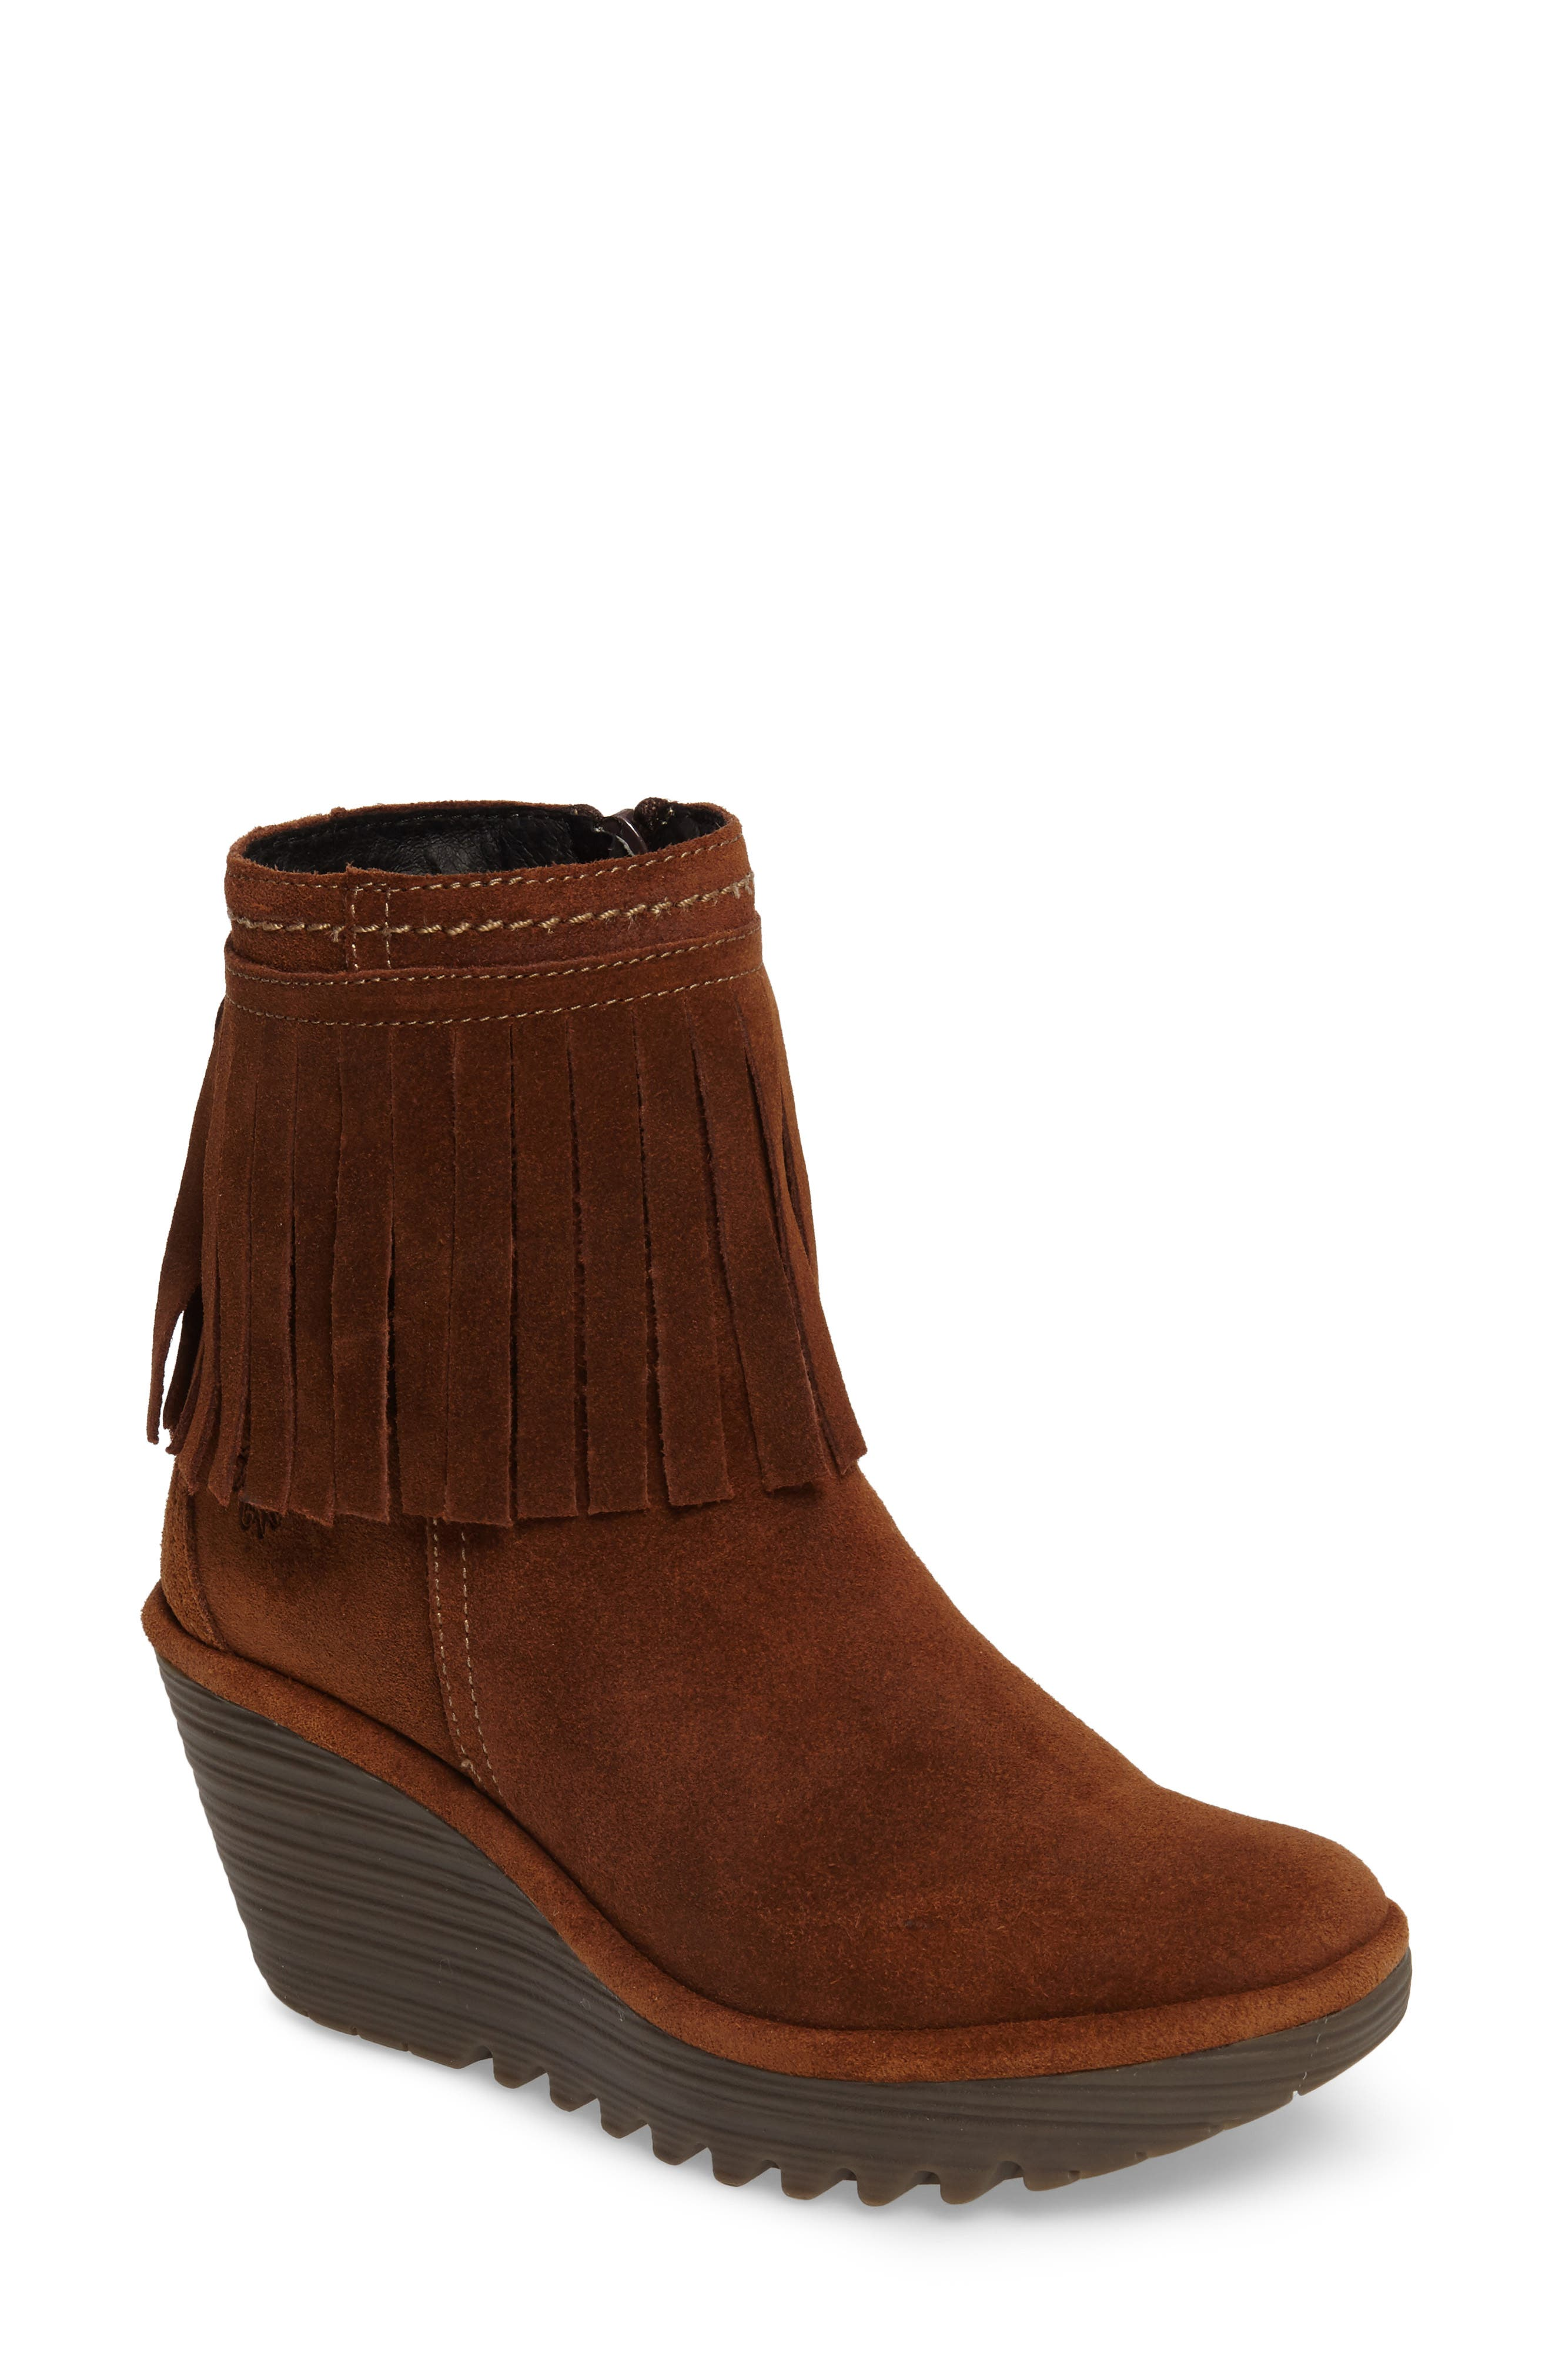 Alternate Image 1 Selected - Fly London Yagi Fringe Boot (Women)